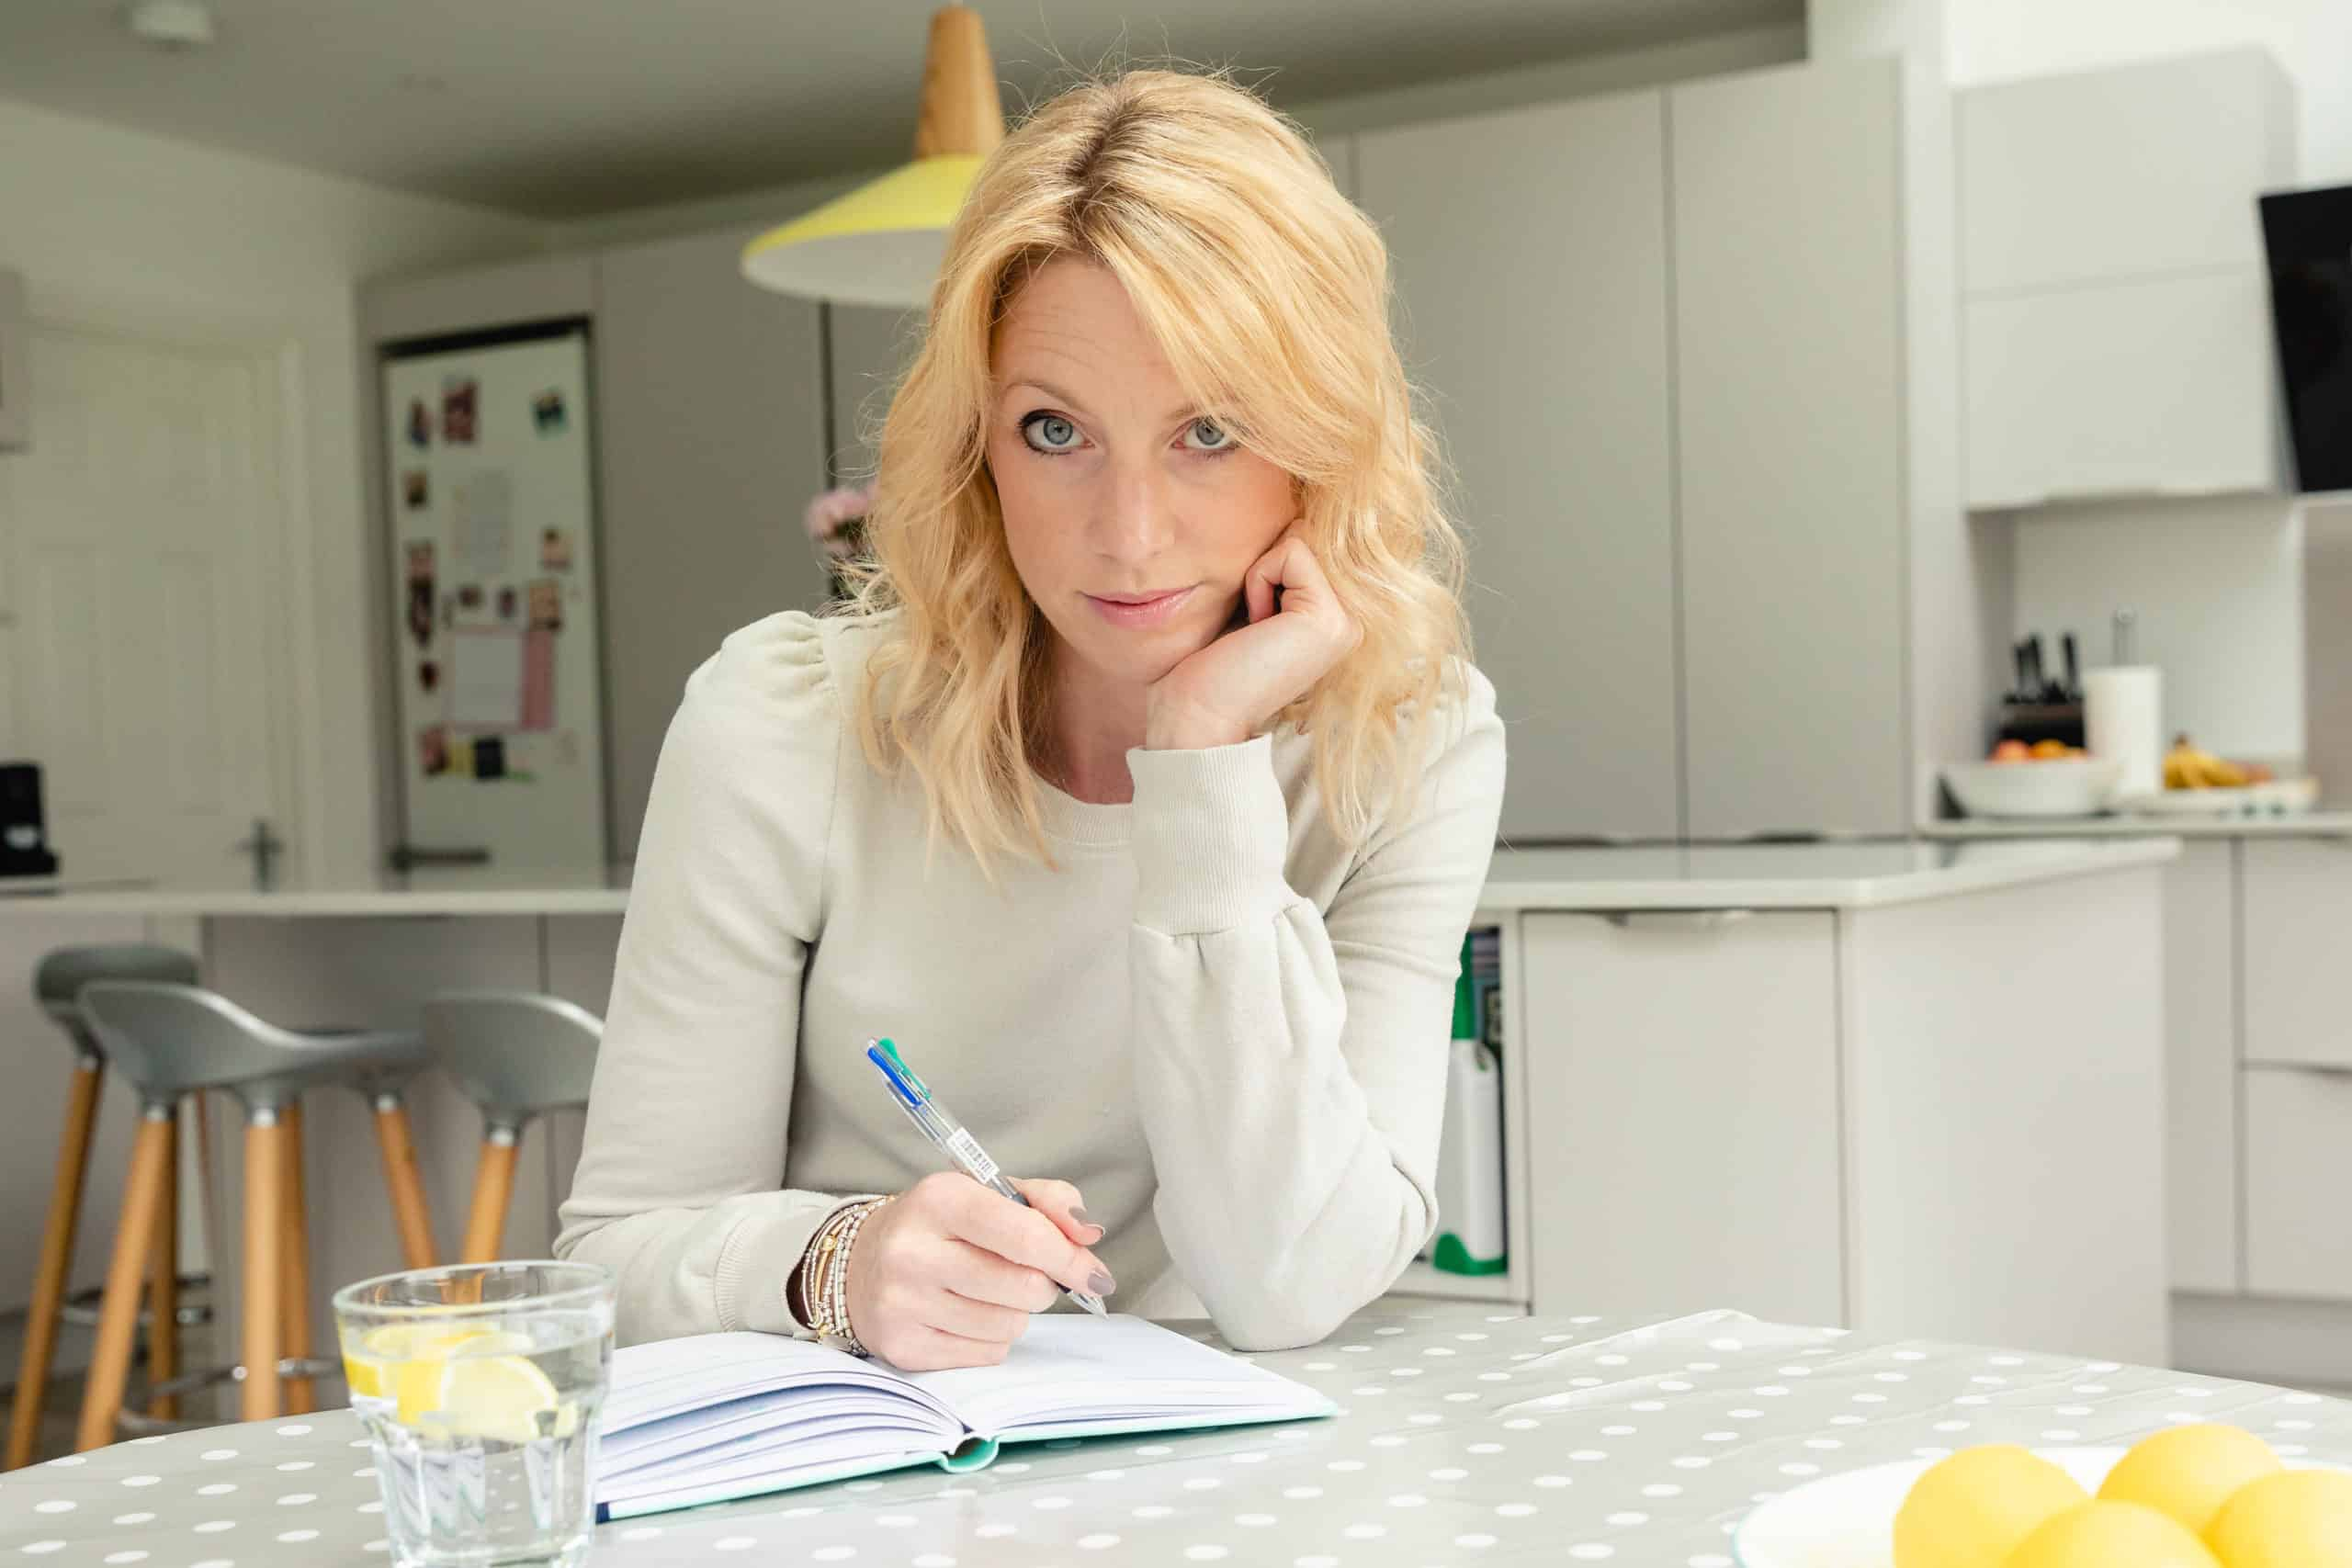 Sarah sitting at kitchen table writing in notebook with lemon water